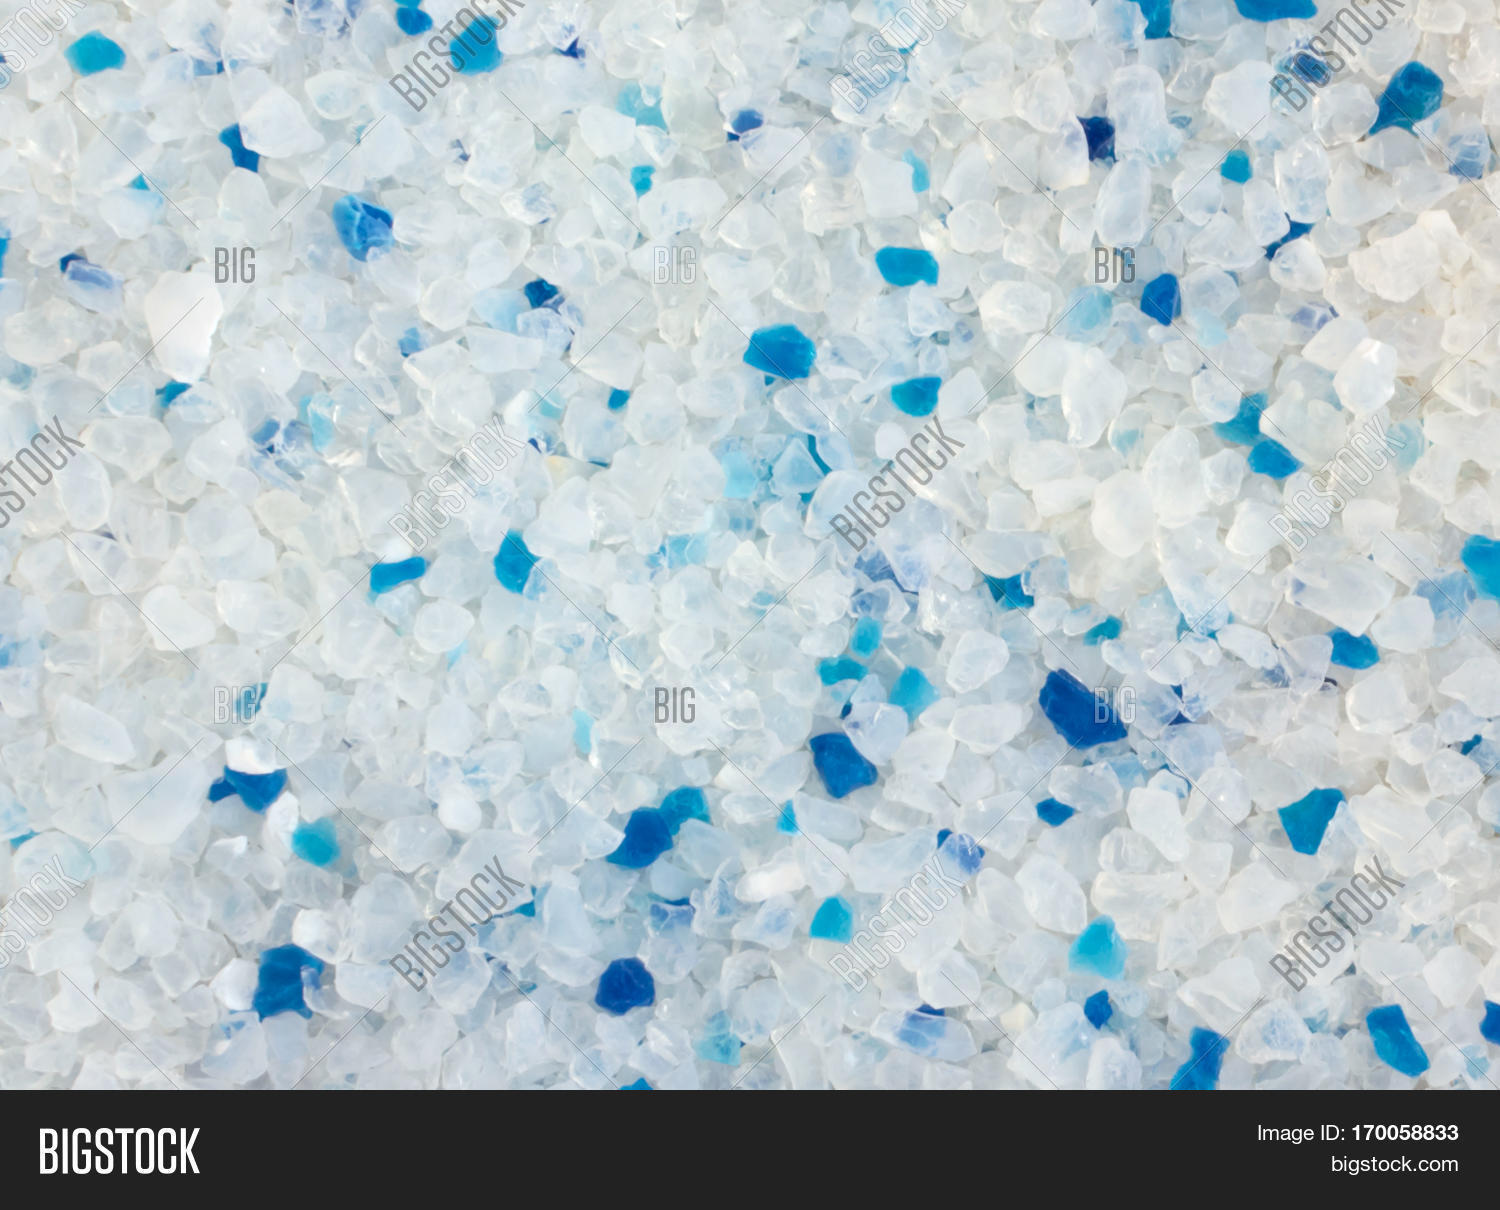 Desiccant Silica Gel Image Photo Free Trial Bigstock Blue Gell Background And White Translucent Crystals Texture